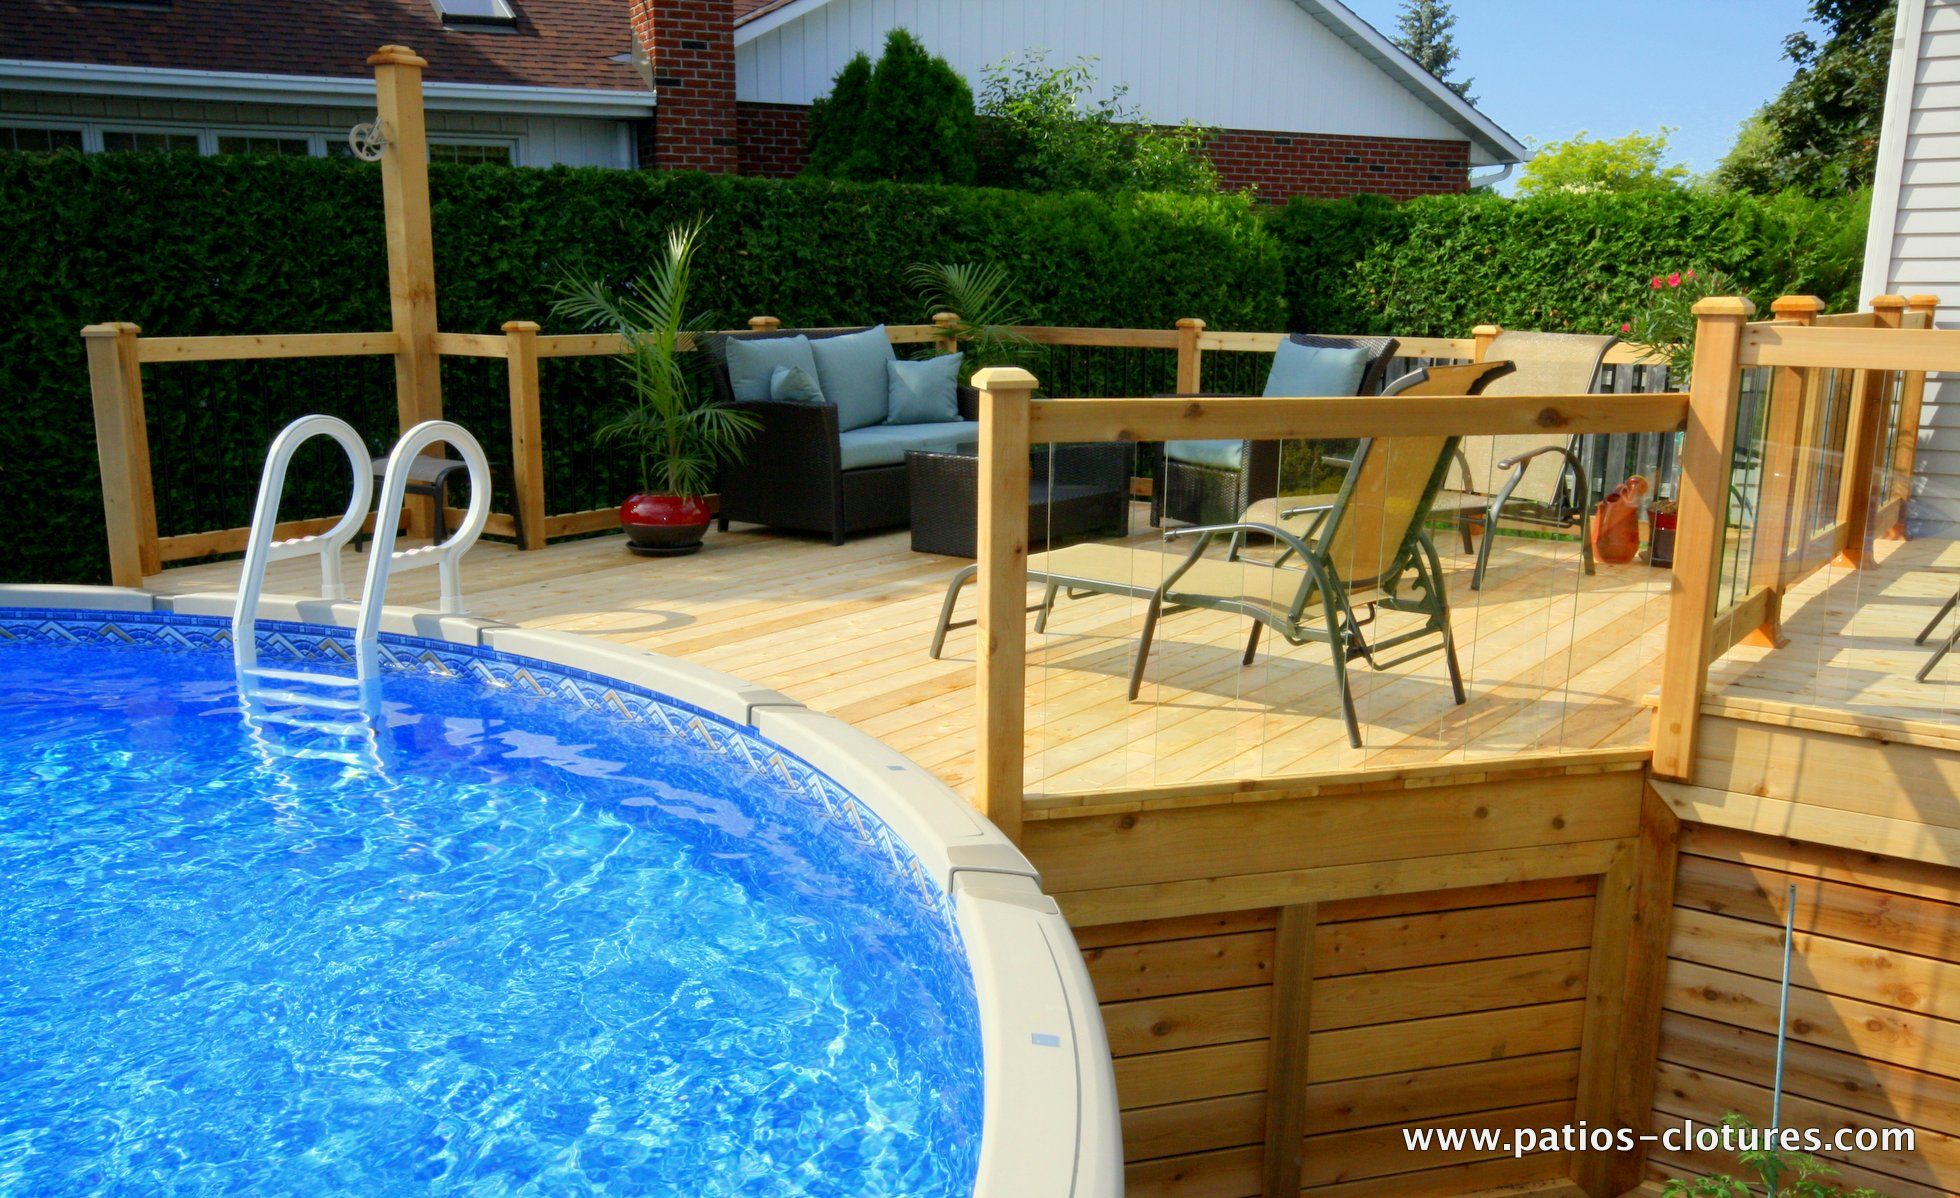 Patio avec un grand deck de piscine hors terre parfait for Patio exterieur arriere